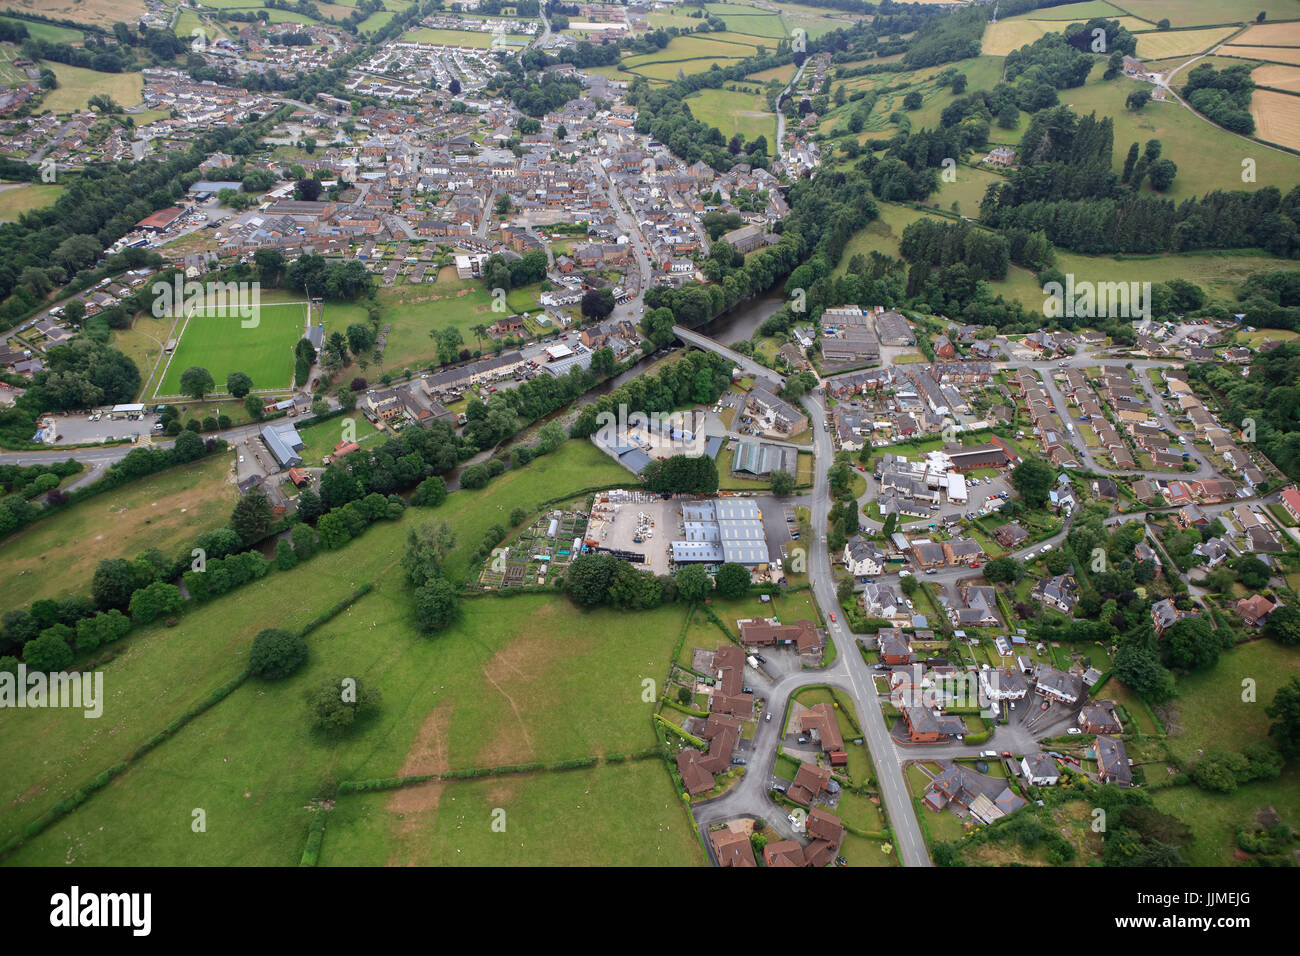 An aerial view of the Powys town of Llanidloes - Stock Image